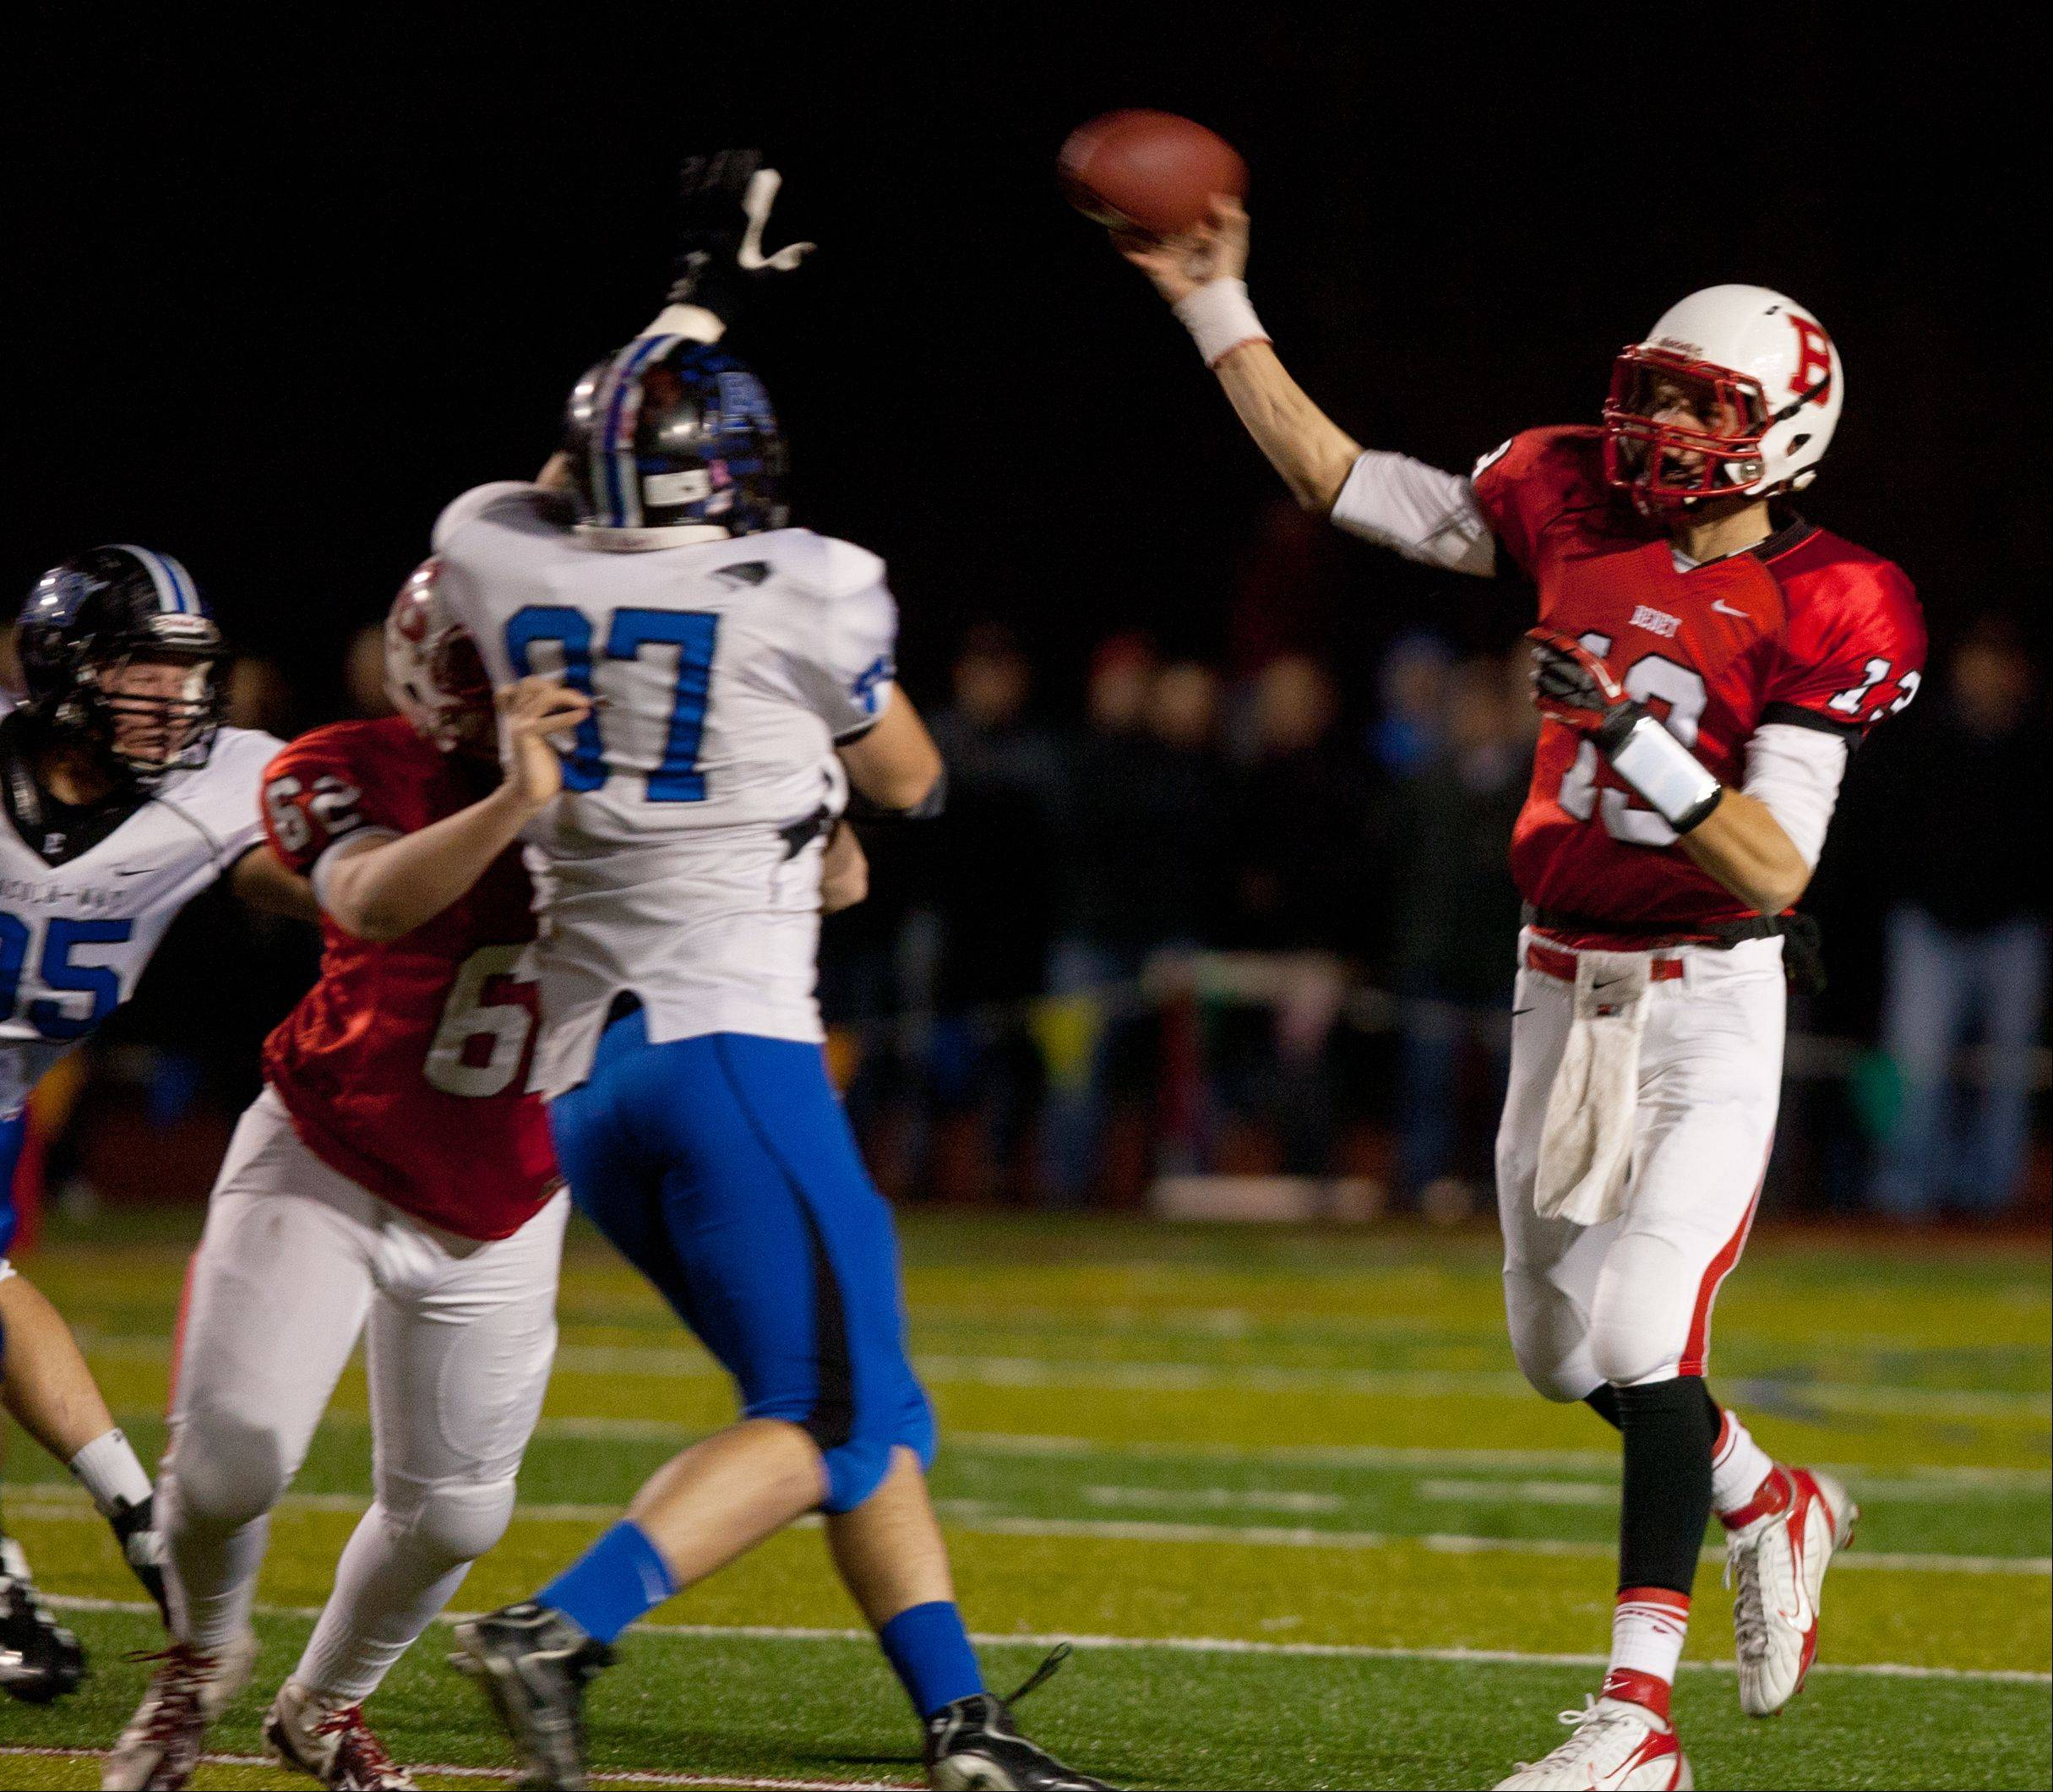 Benet quarterback Jack Beneventi throws for an incomplete pass against Lincoln-Way East during Class 7A football semifinals at Benedictine.